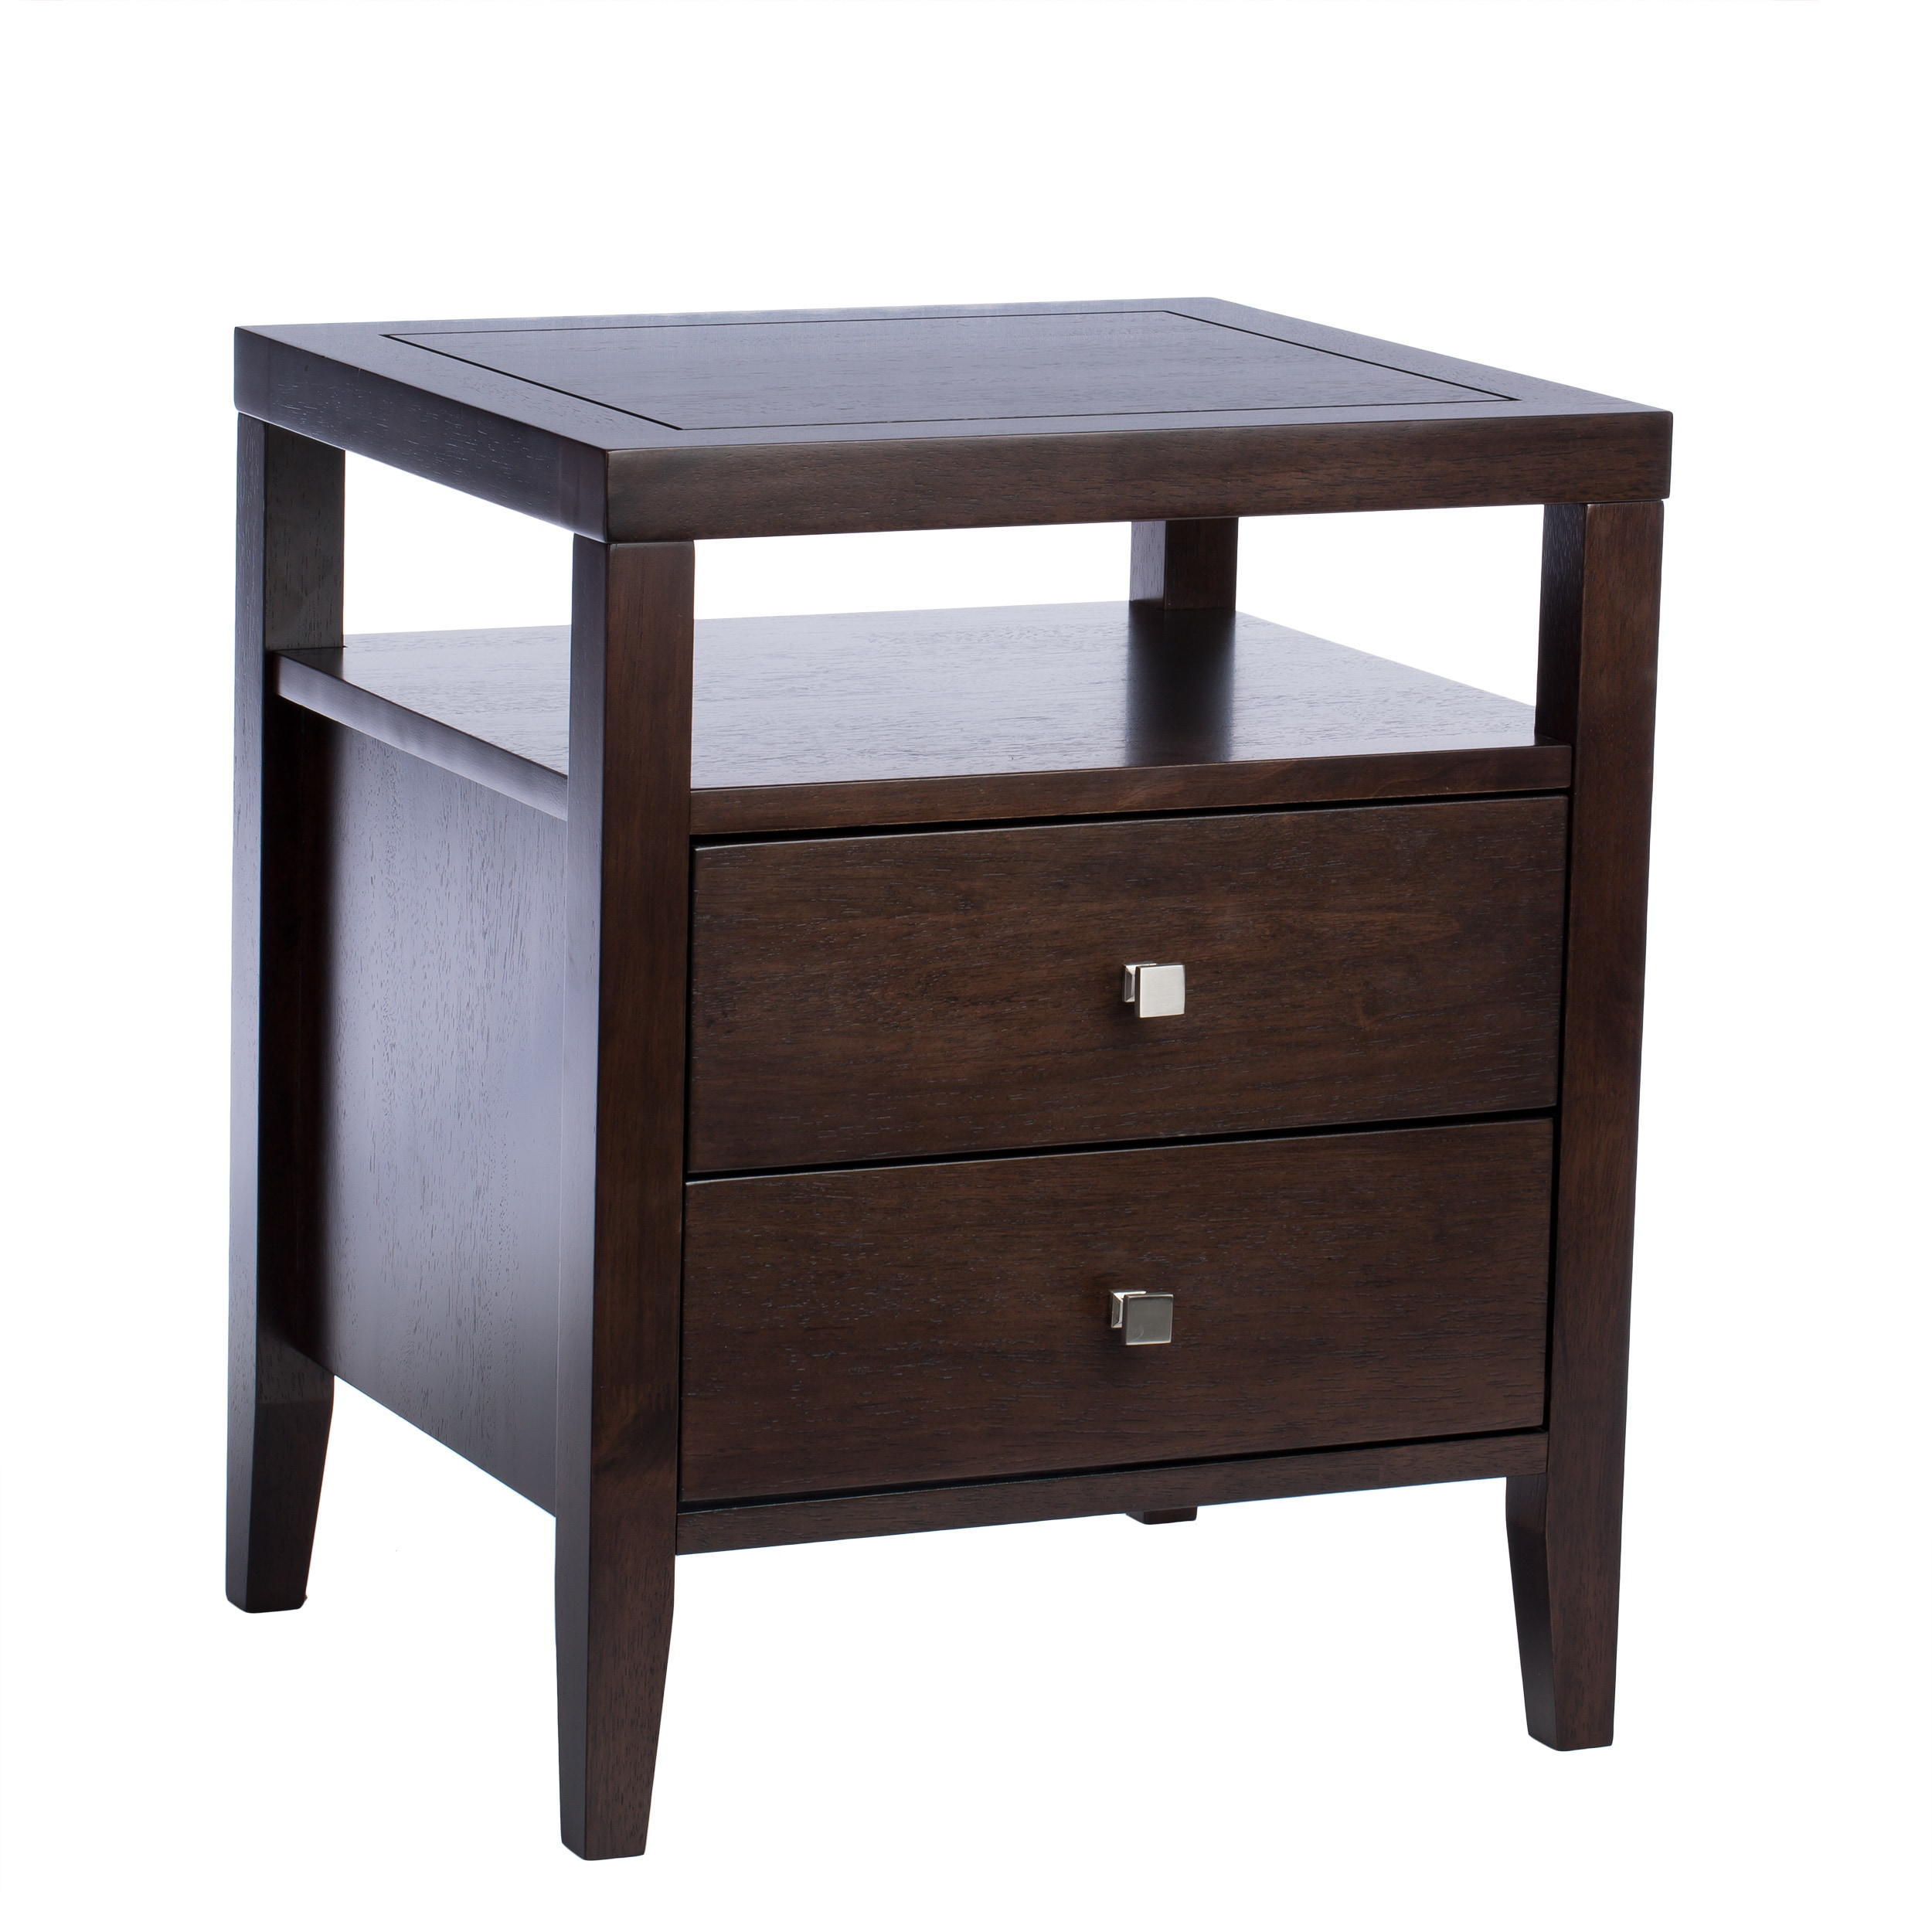 Fantastic Jasper Laine Aristo 2-drawer Nightstand - Free Shipping Today  UK14